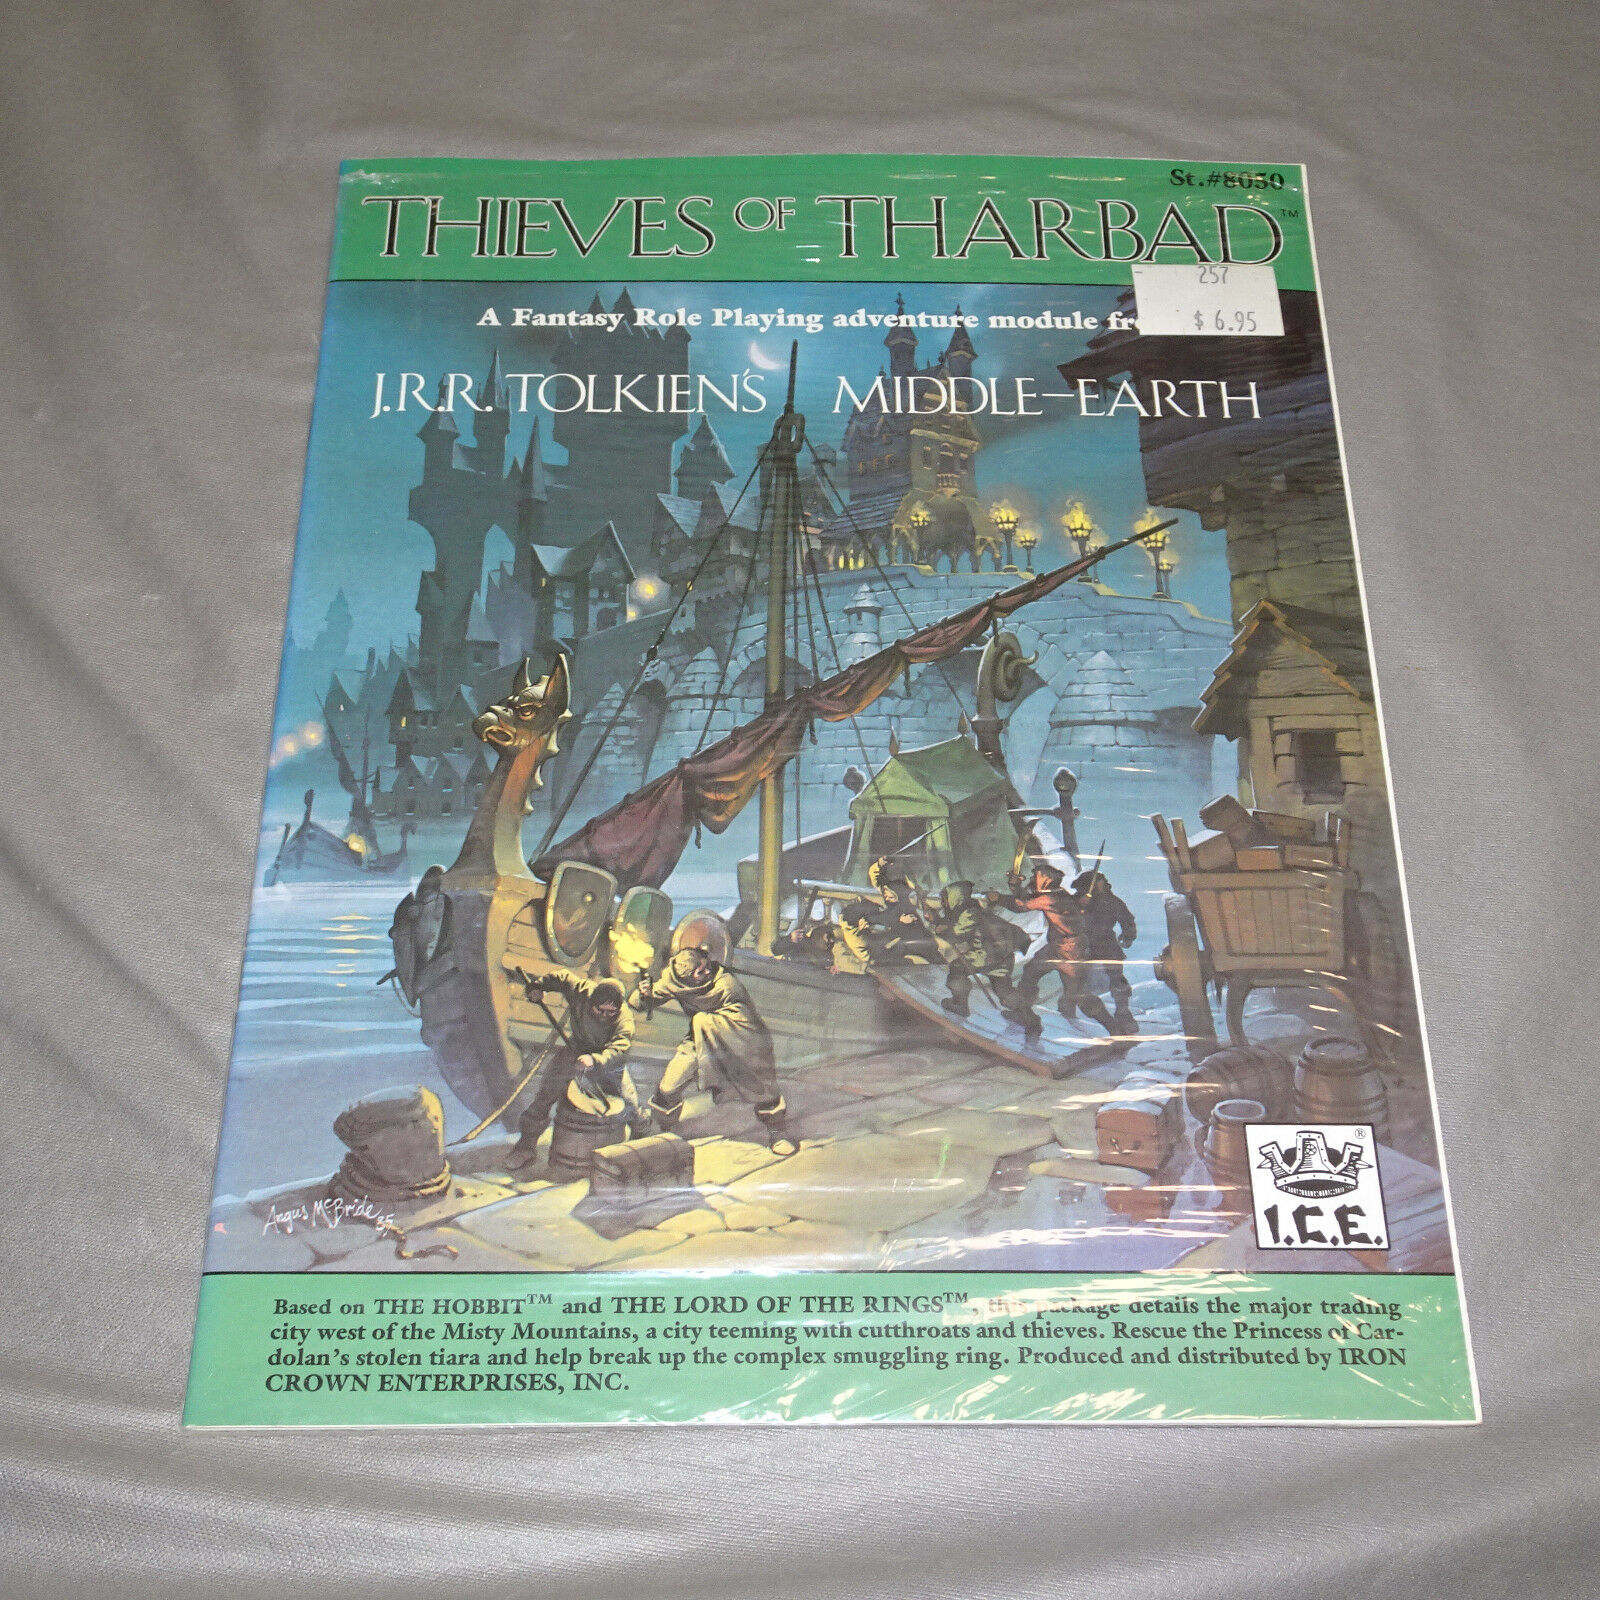 THIEVES OF THARBAD  MIDDLE-EARTH  8050  I.C.E. - 1985